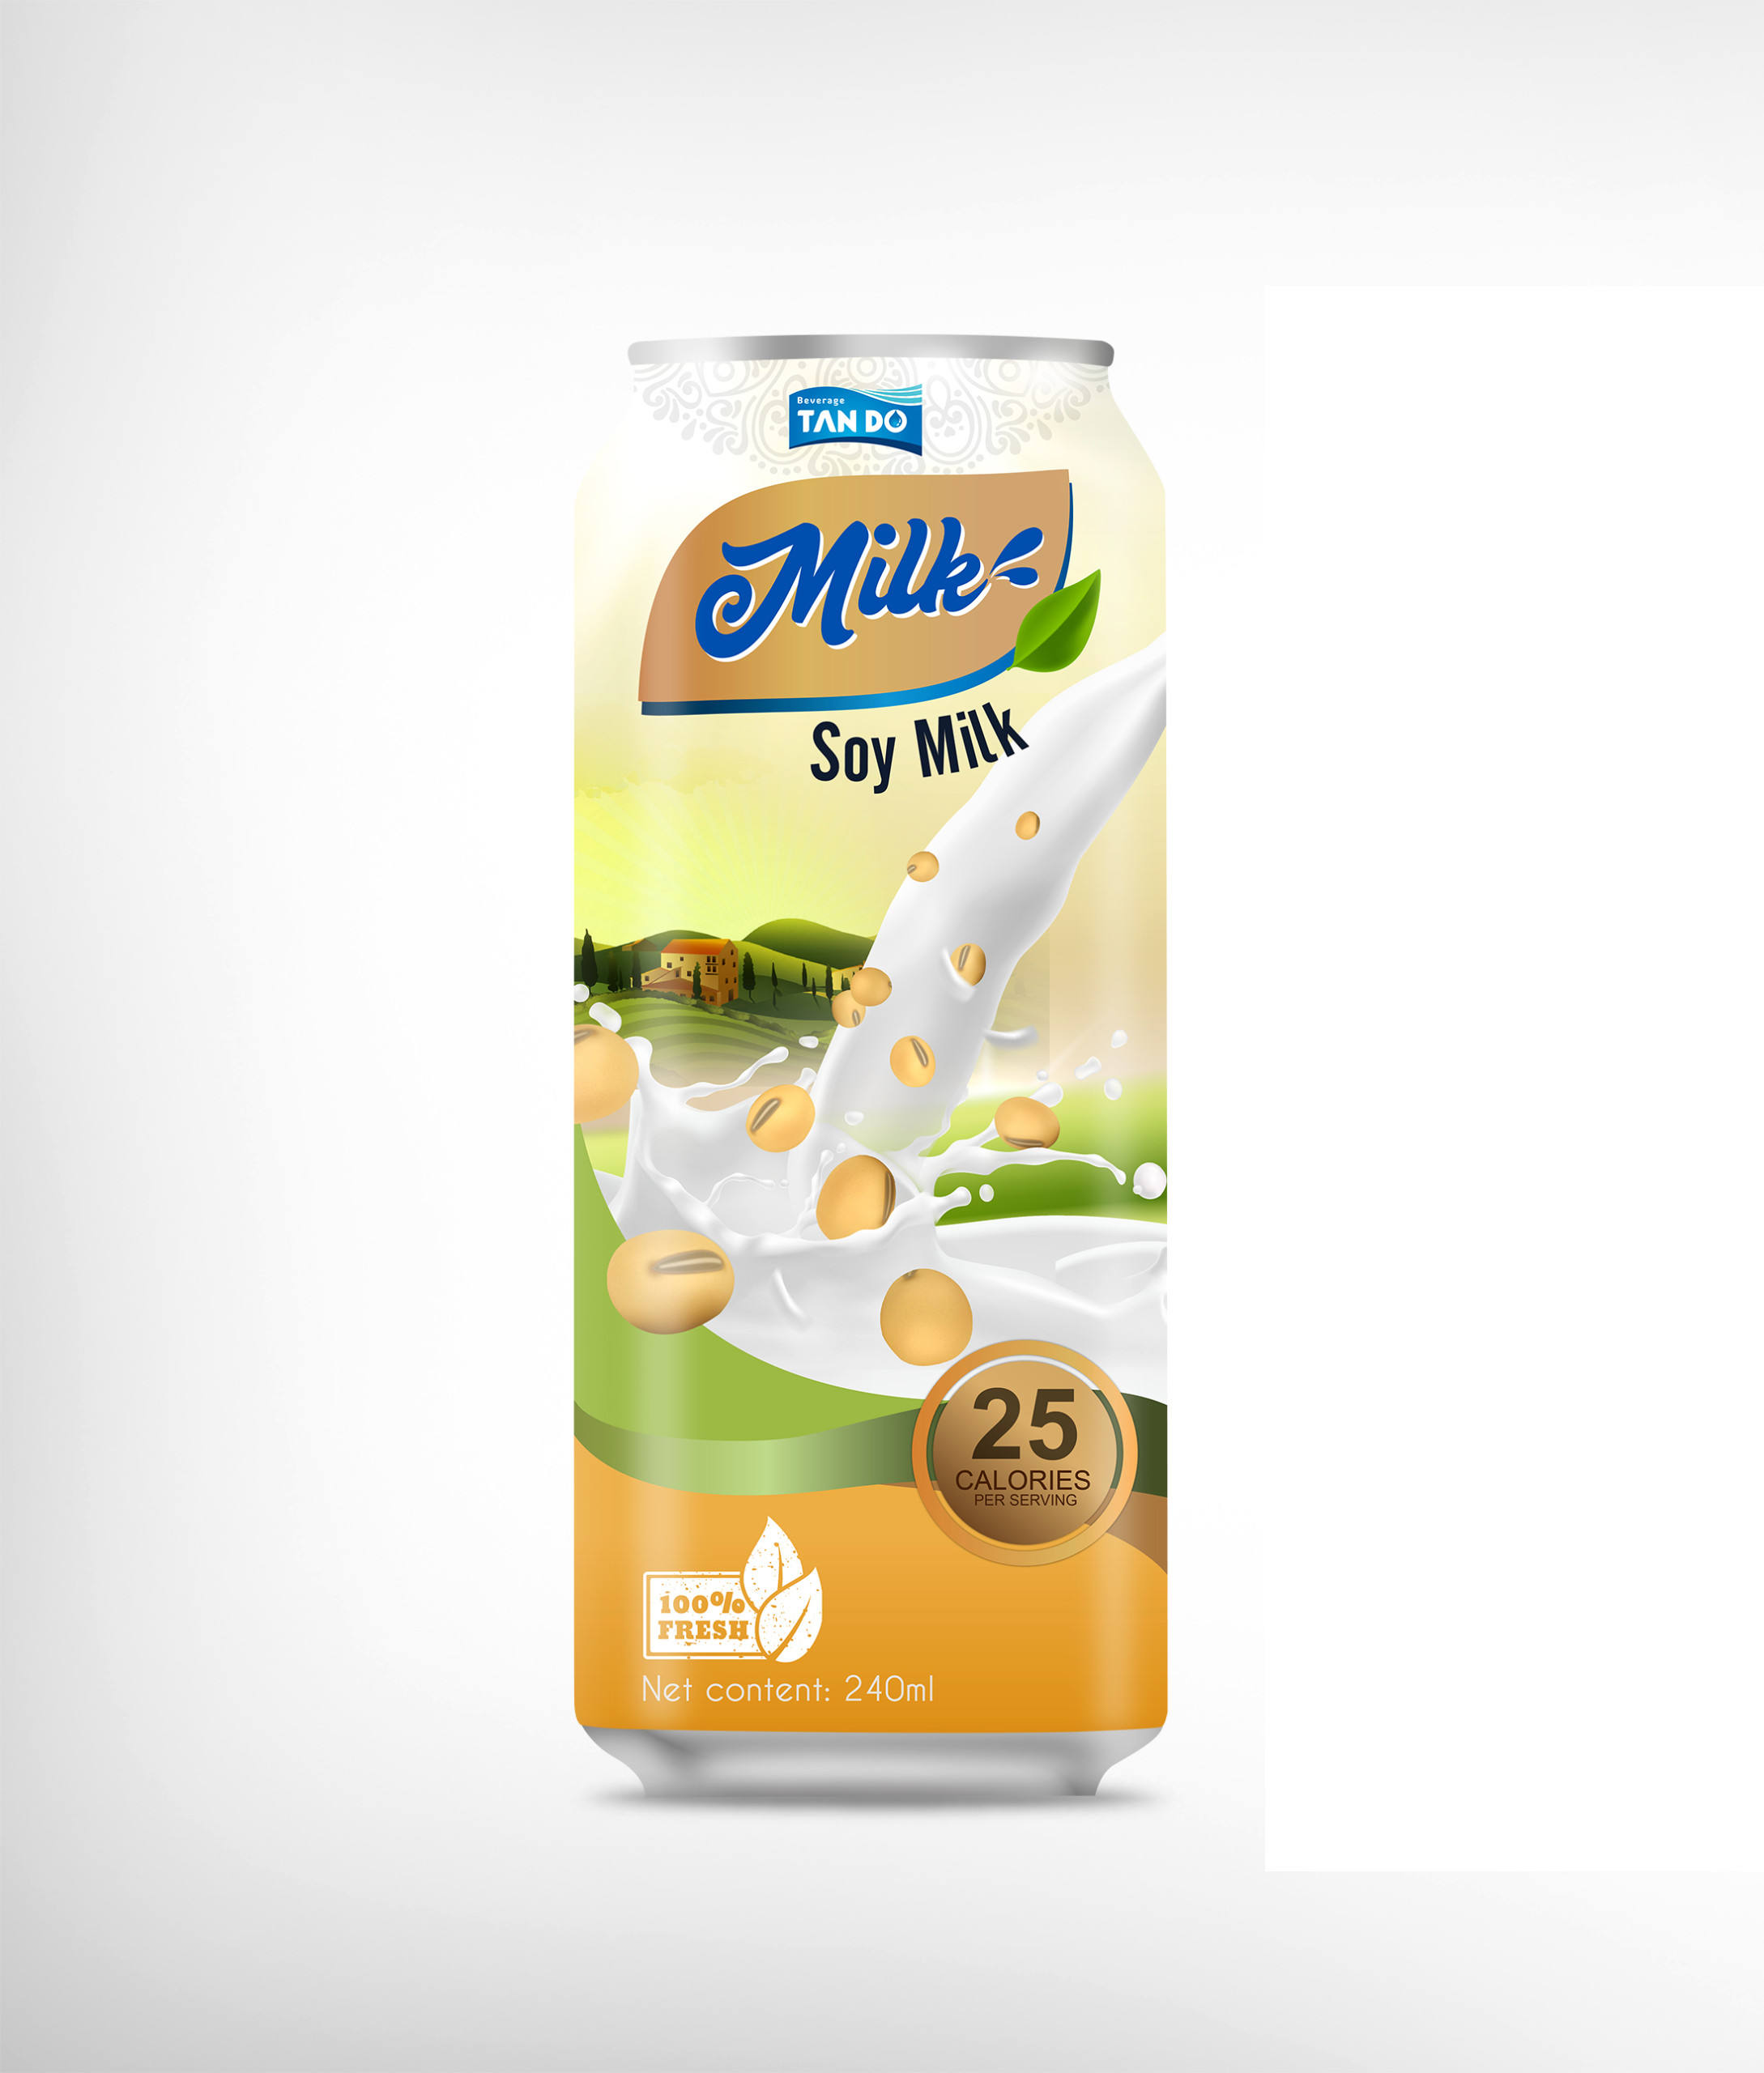 Soy milk brand flavored beverage factory private brand high quality